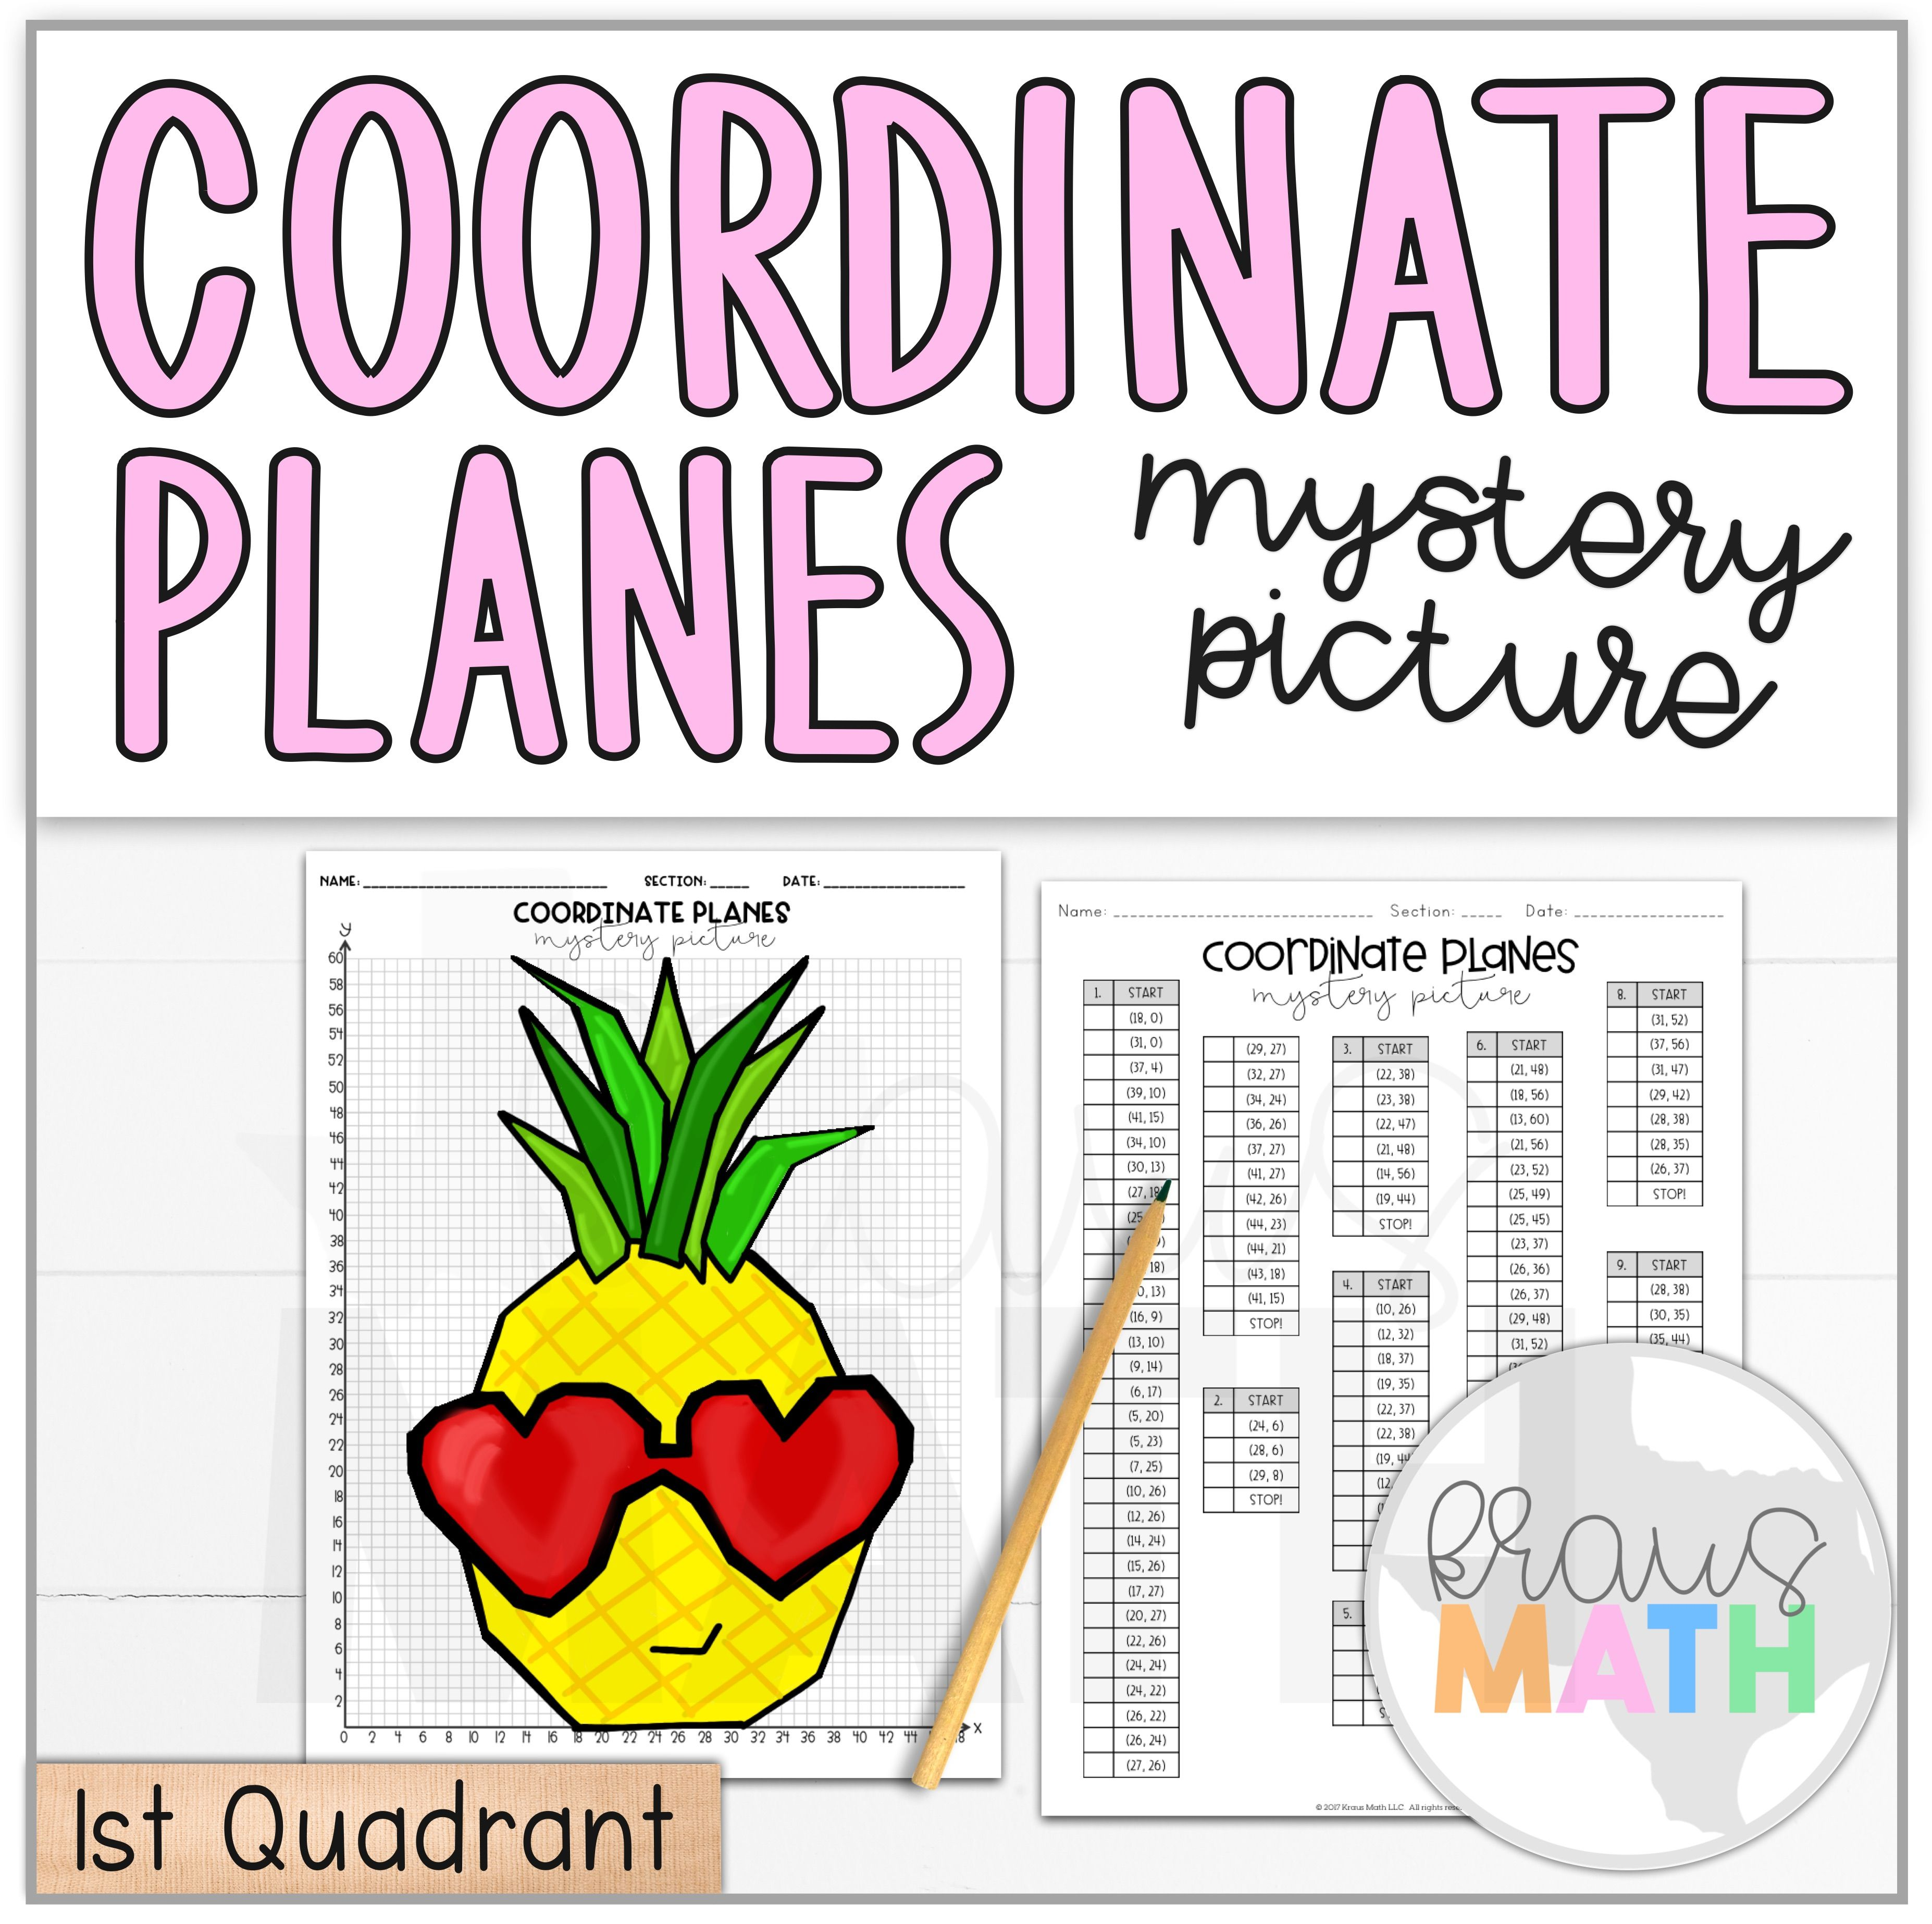 Pineapple In Heart Sunglasses Coordinate Plane Mystery Picture 1st Quadrant Great For A Valentine S Day Activ Coordinate Plane Fun Math Fun Math Activities [ 3692 x 3708 Pixel ]